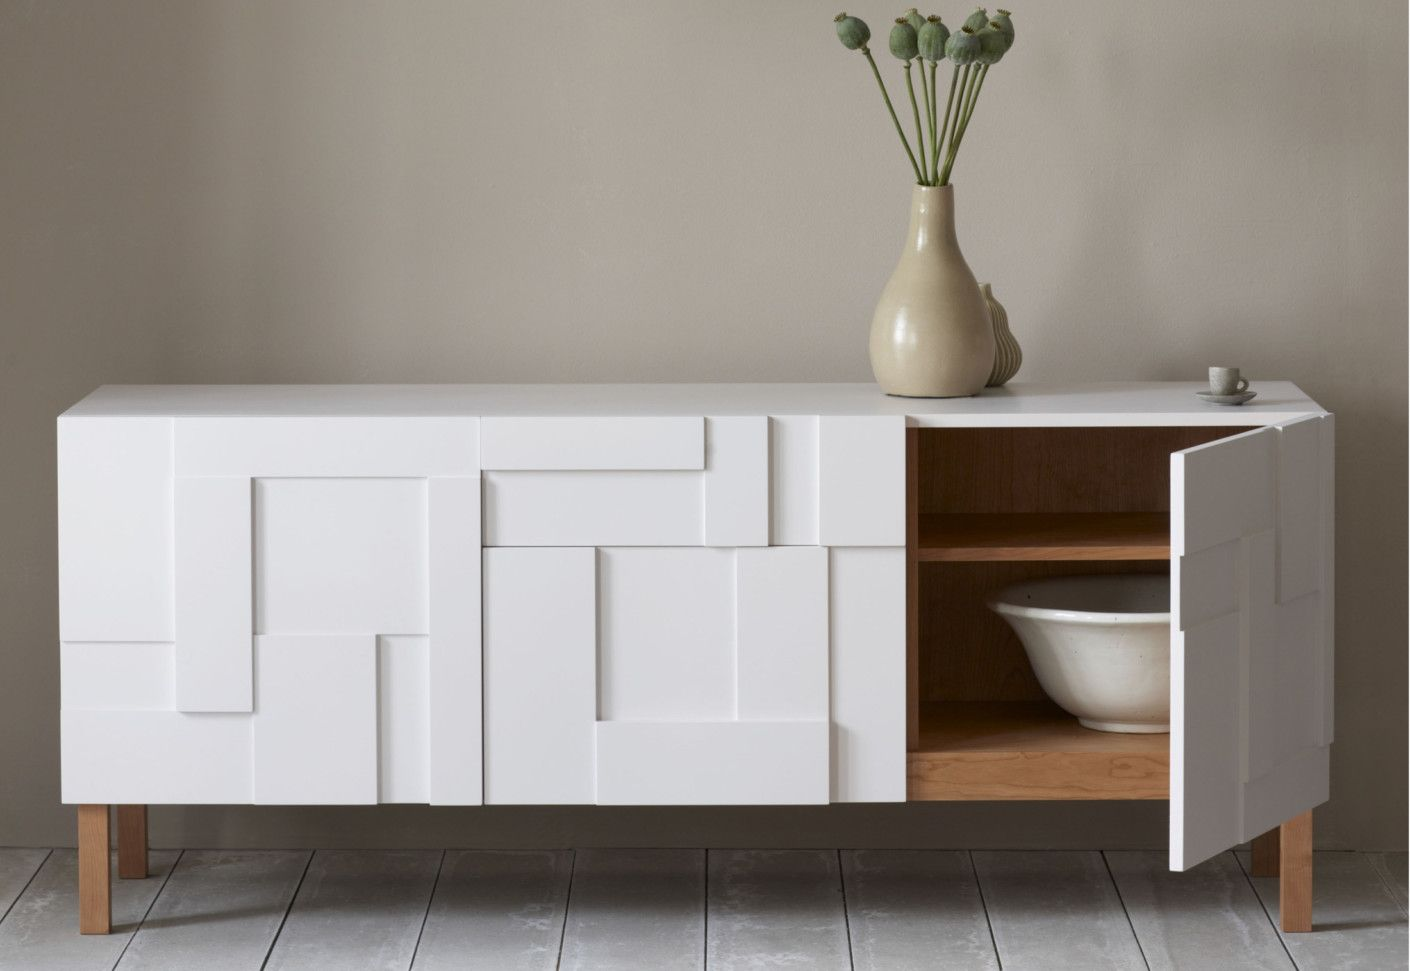 Top 10 Stunning Sideboards To Enhance Your Living Room Decor Modern Furniture Design Wood Iconic Furniture Design Luxury Sideboard